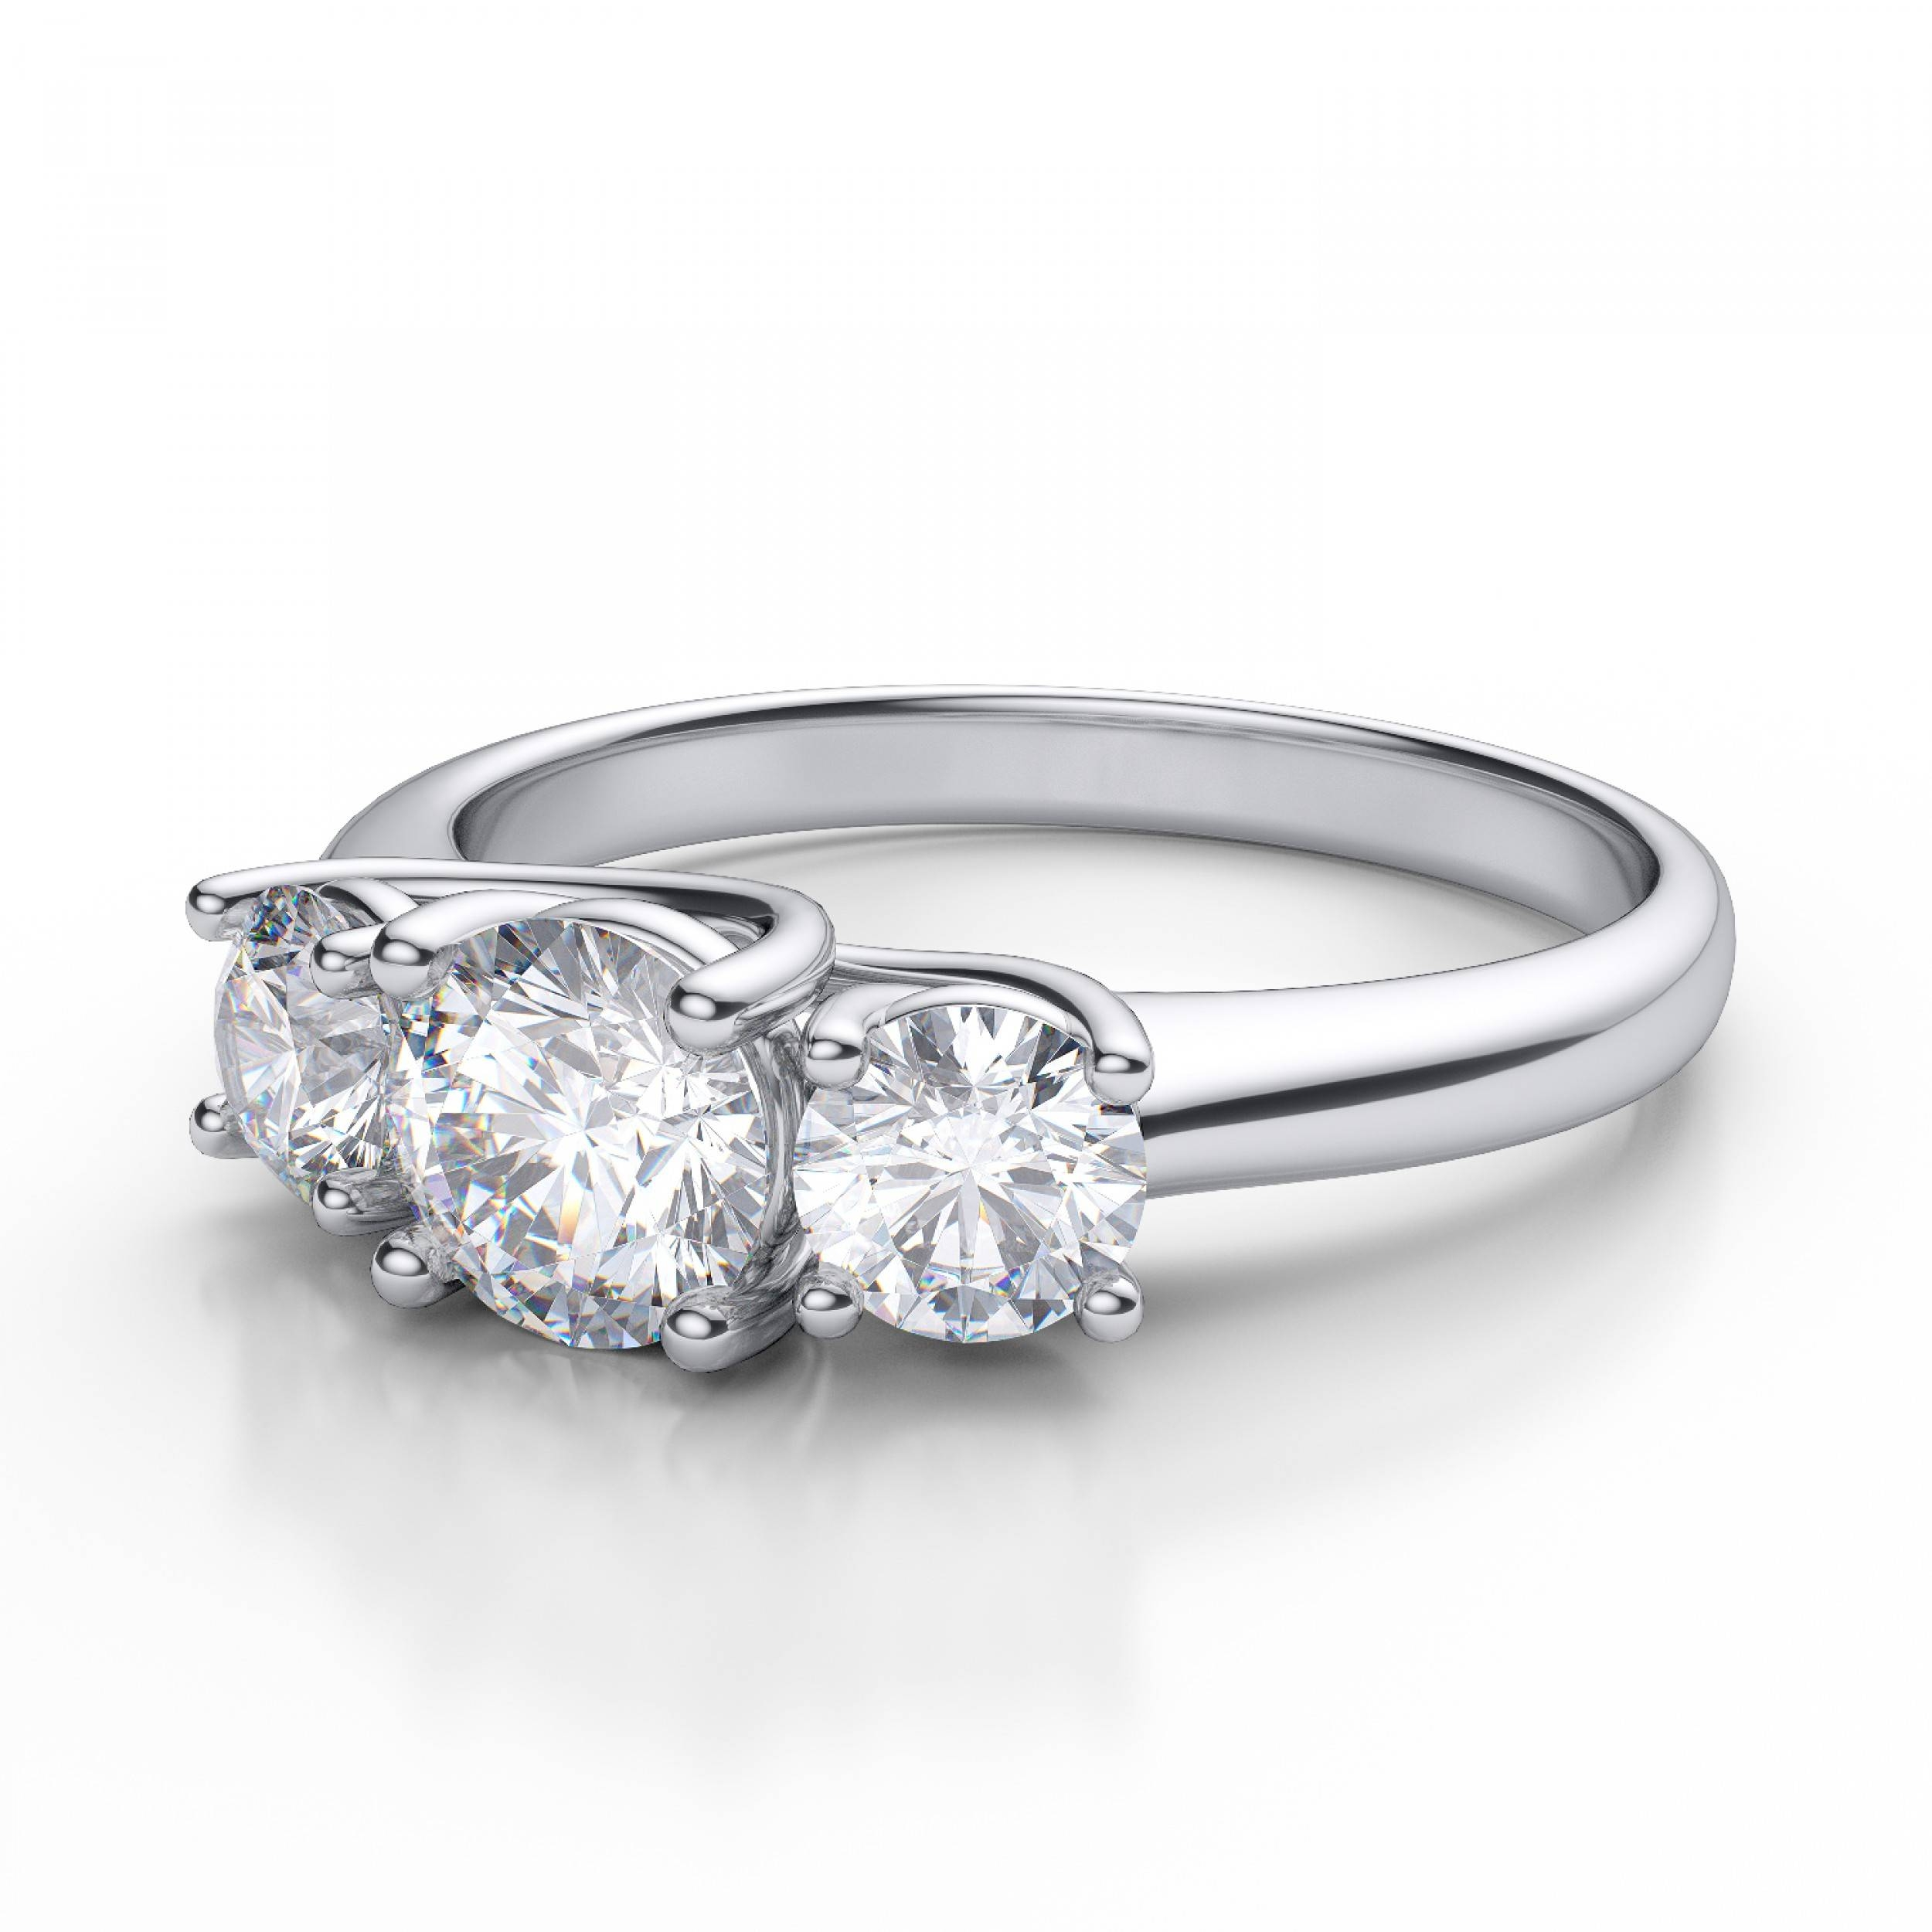 Three Stone Anniversary Diamond Rings | Wedding, Promise, Diamond Within Most Current Gold Diamond Anniversary Rings (View 23 of 25)